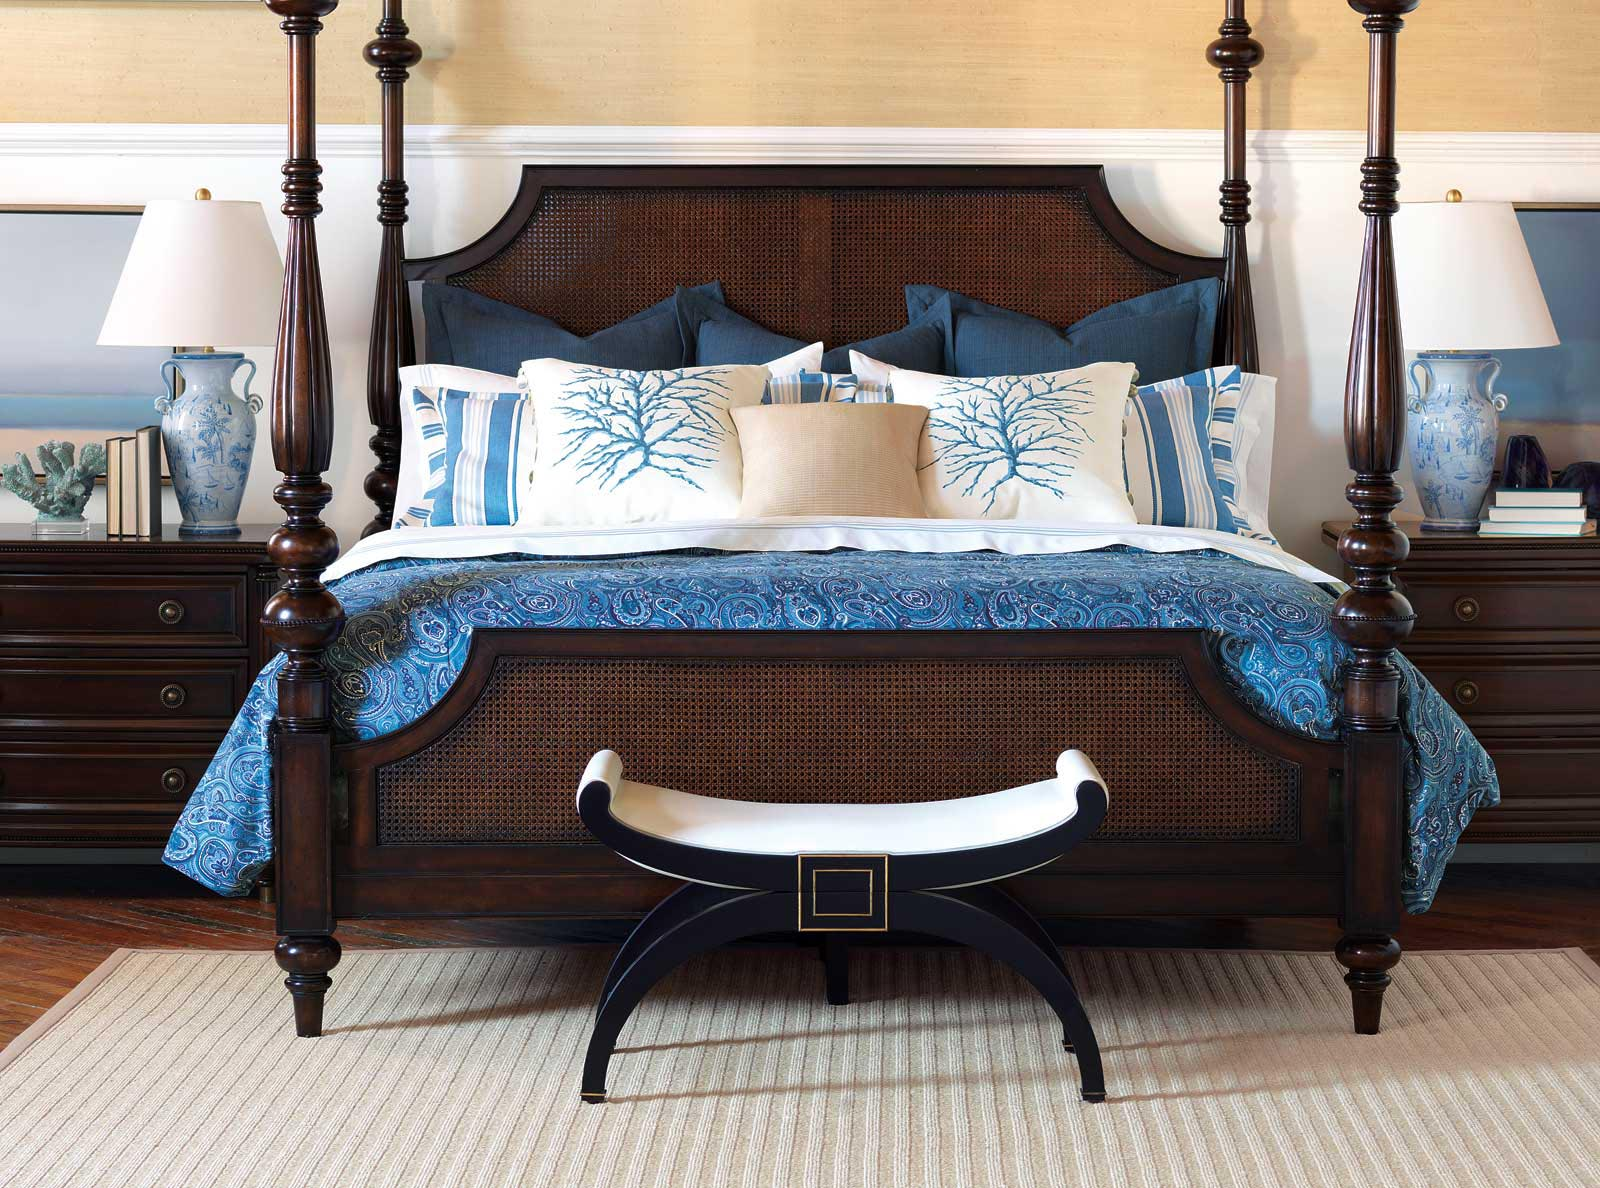 Nautical bedroom furniture ideas homesfeed - Decorating bedroom furniture ...